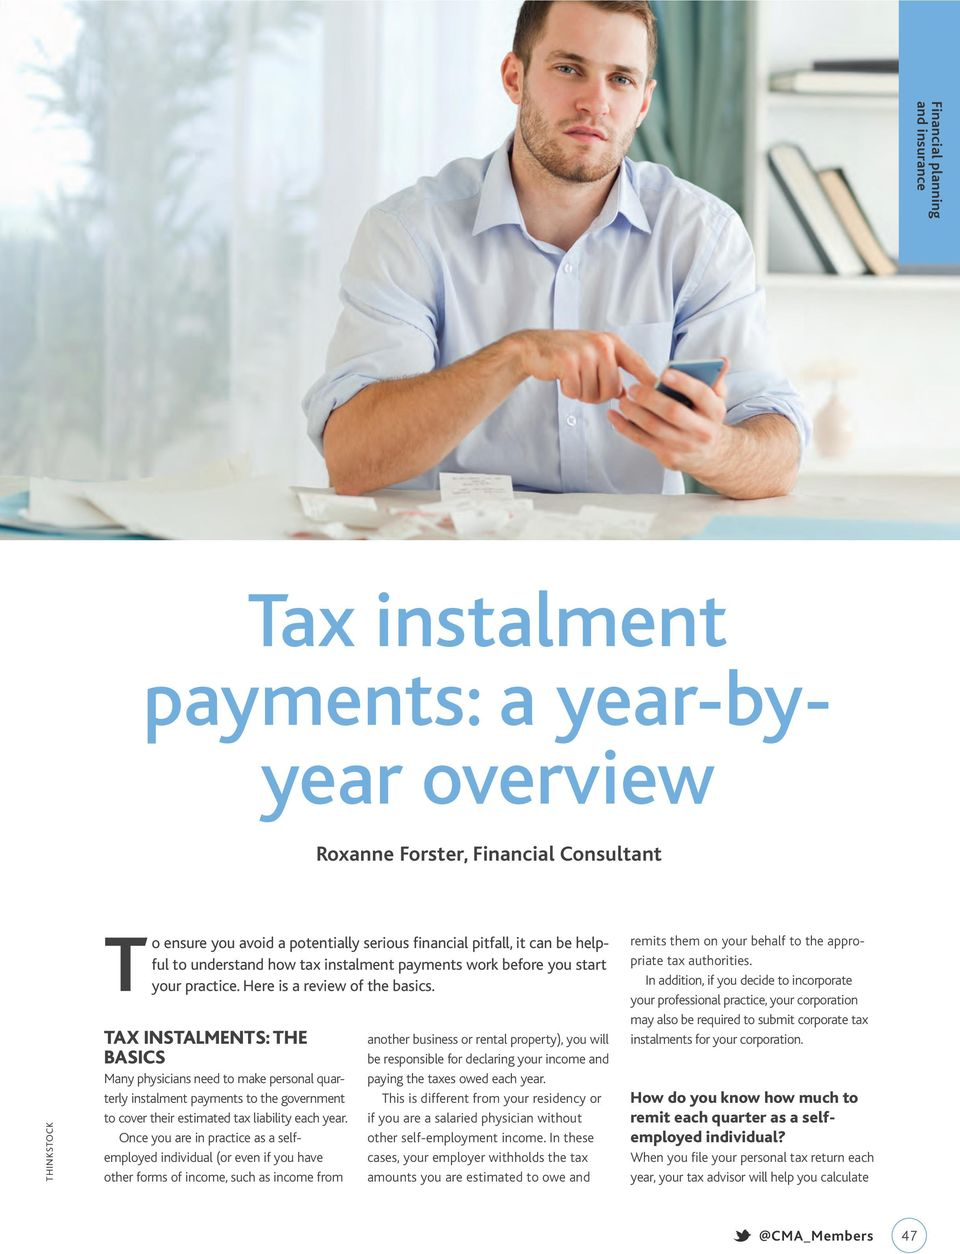 TAX INSTALMENTS: THE BASICS Many physicians need to make personal quarterly instalment payments to the government to cover their estimated tax liability each year.